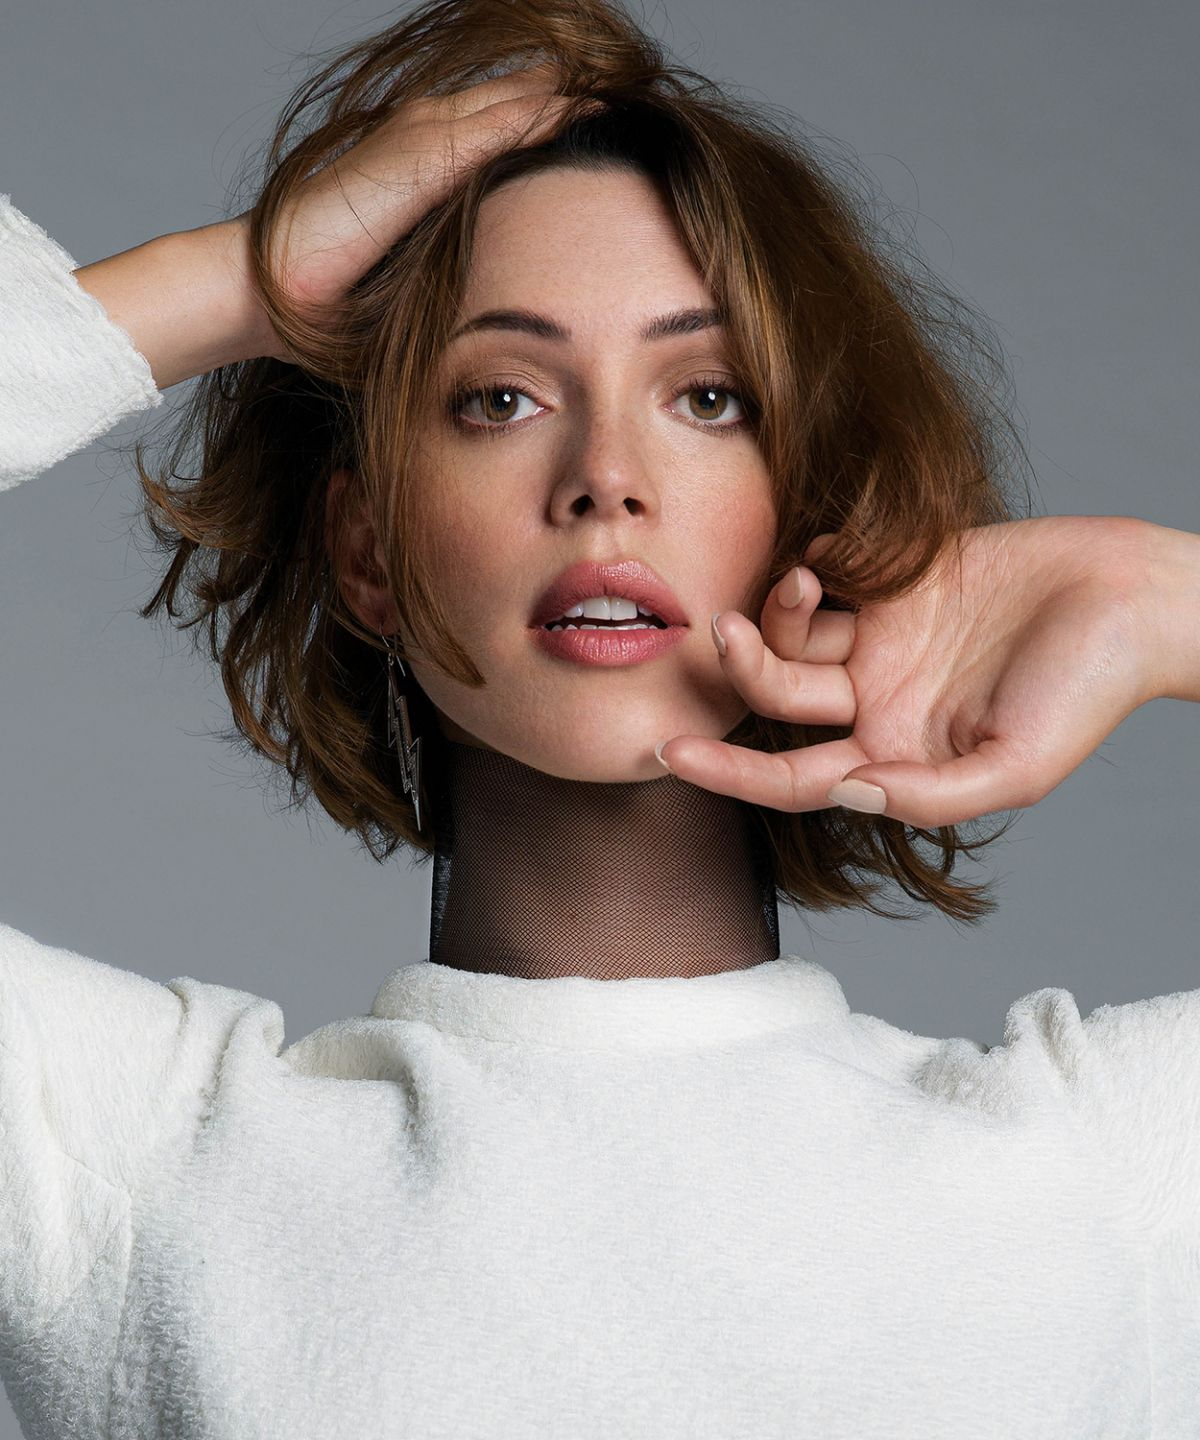 rebecca-hall-at-an-le-photoshoot_1.jpg